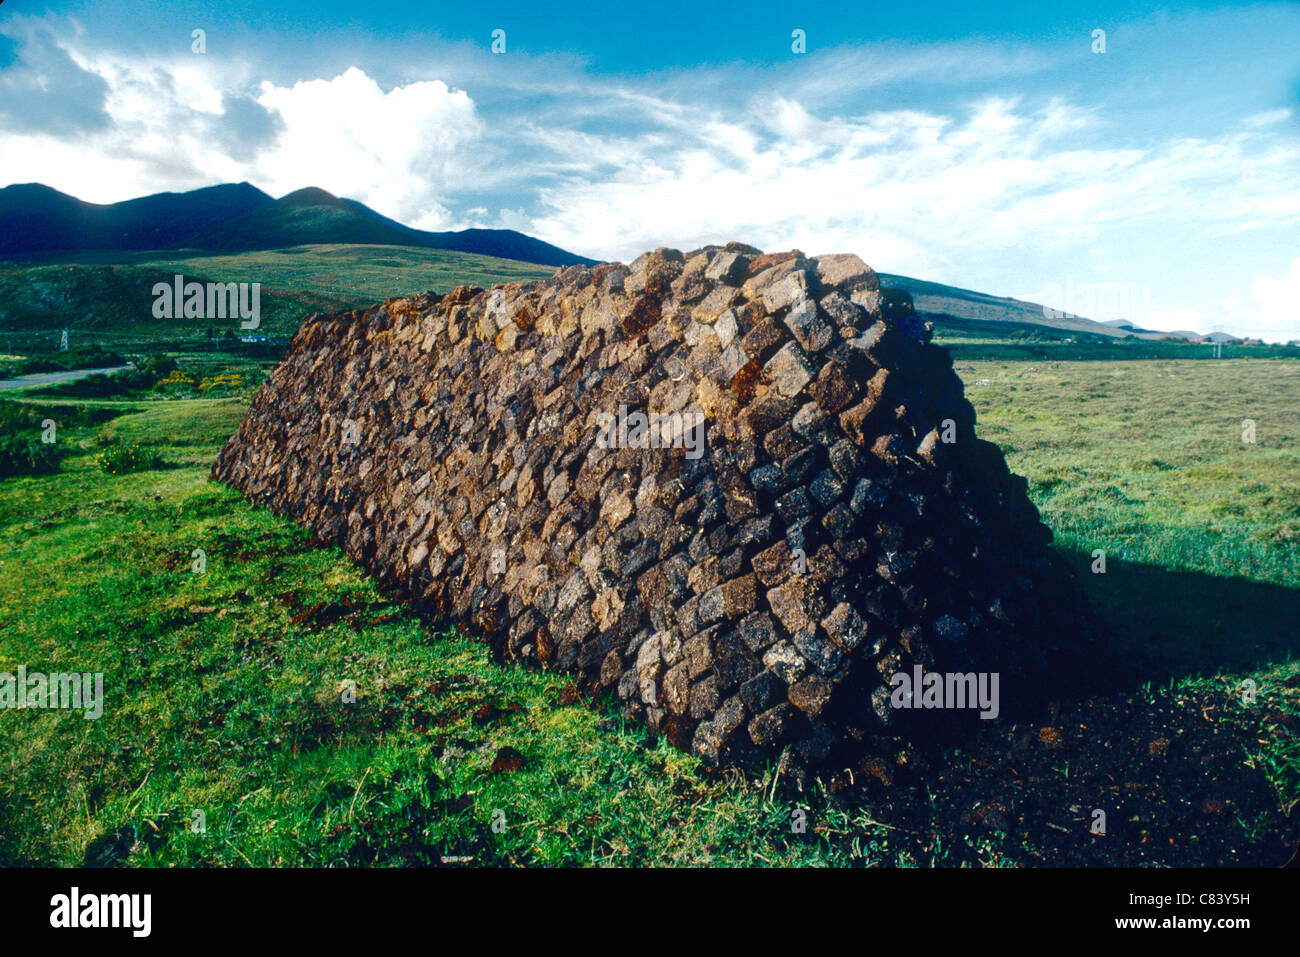 A well carefully stacked clamp of Turf (peat)  in a Connemara landscape in the west of Ireland - Stock Image